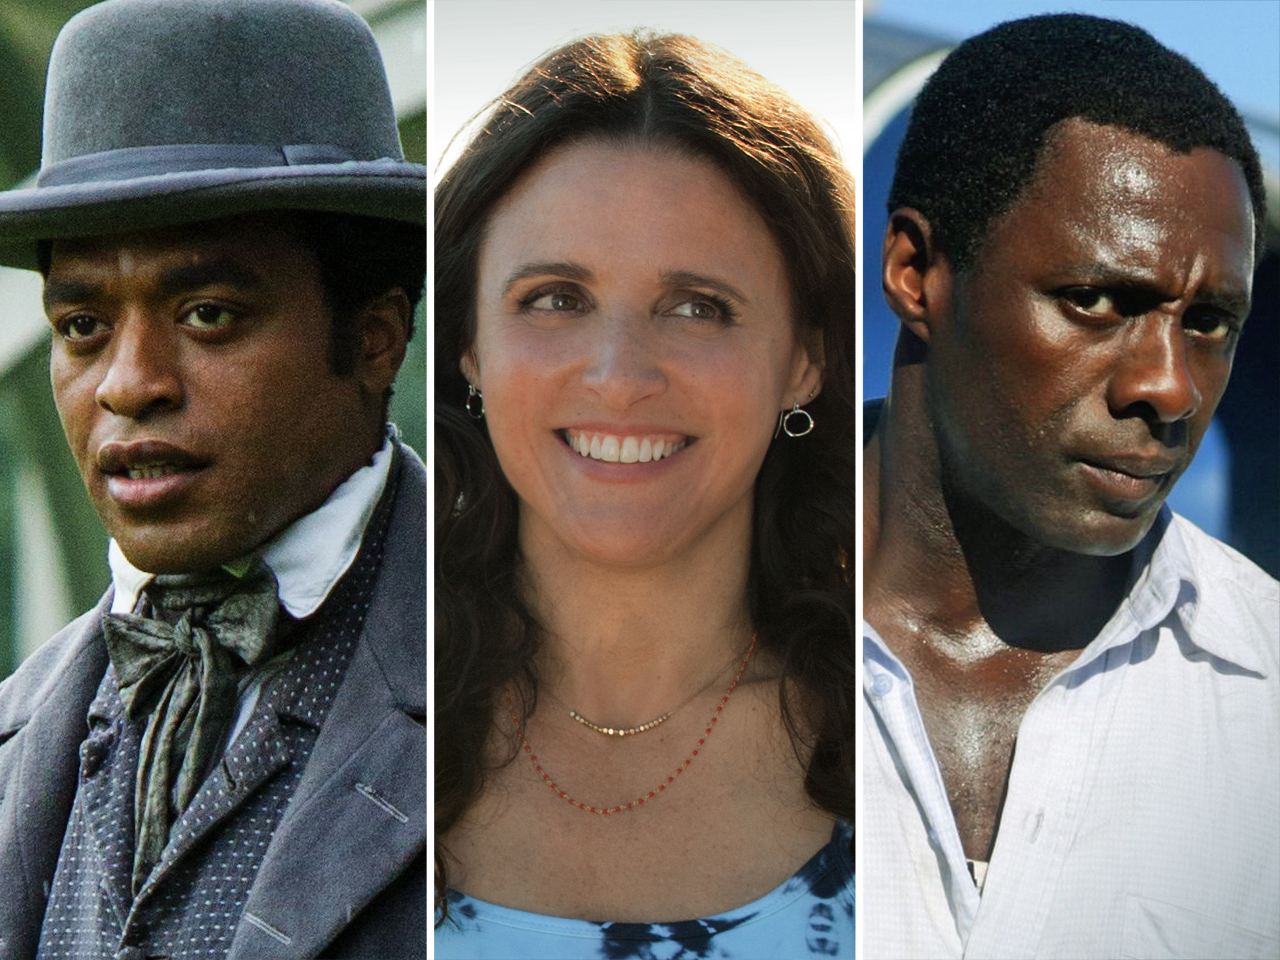 Chiwetel Ejiofor, Julia Louis-Dreyfus and Idris Elba each received two Golden Globes nominations on Thursday.